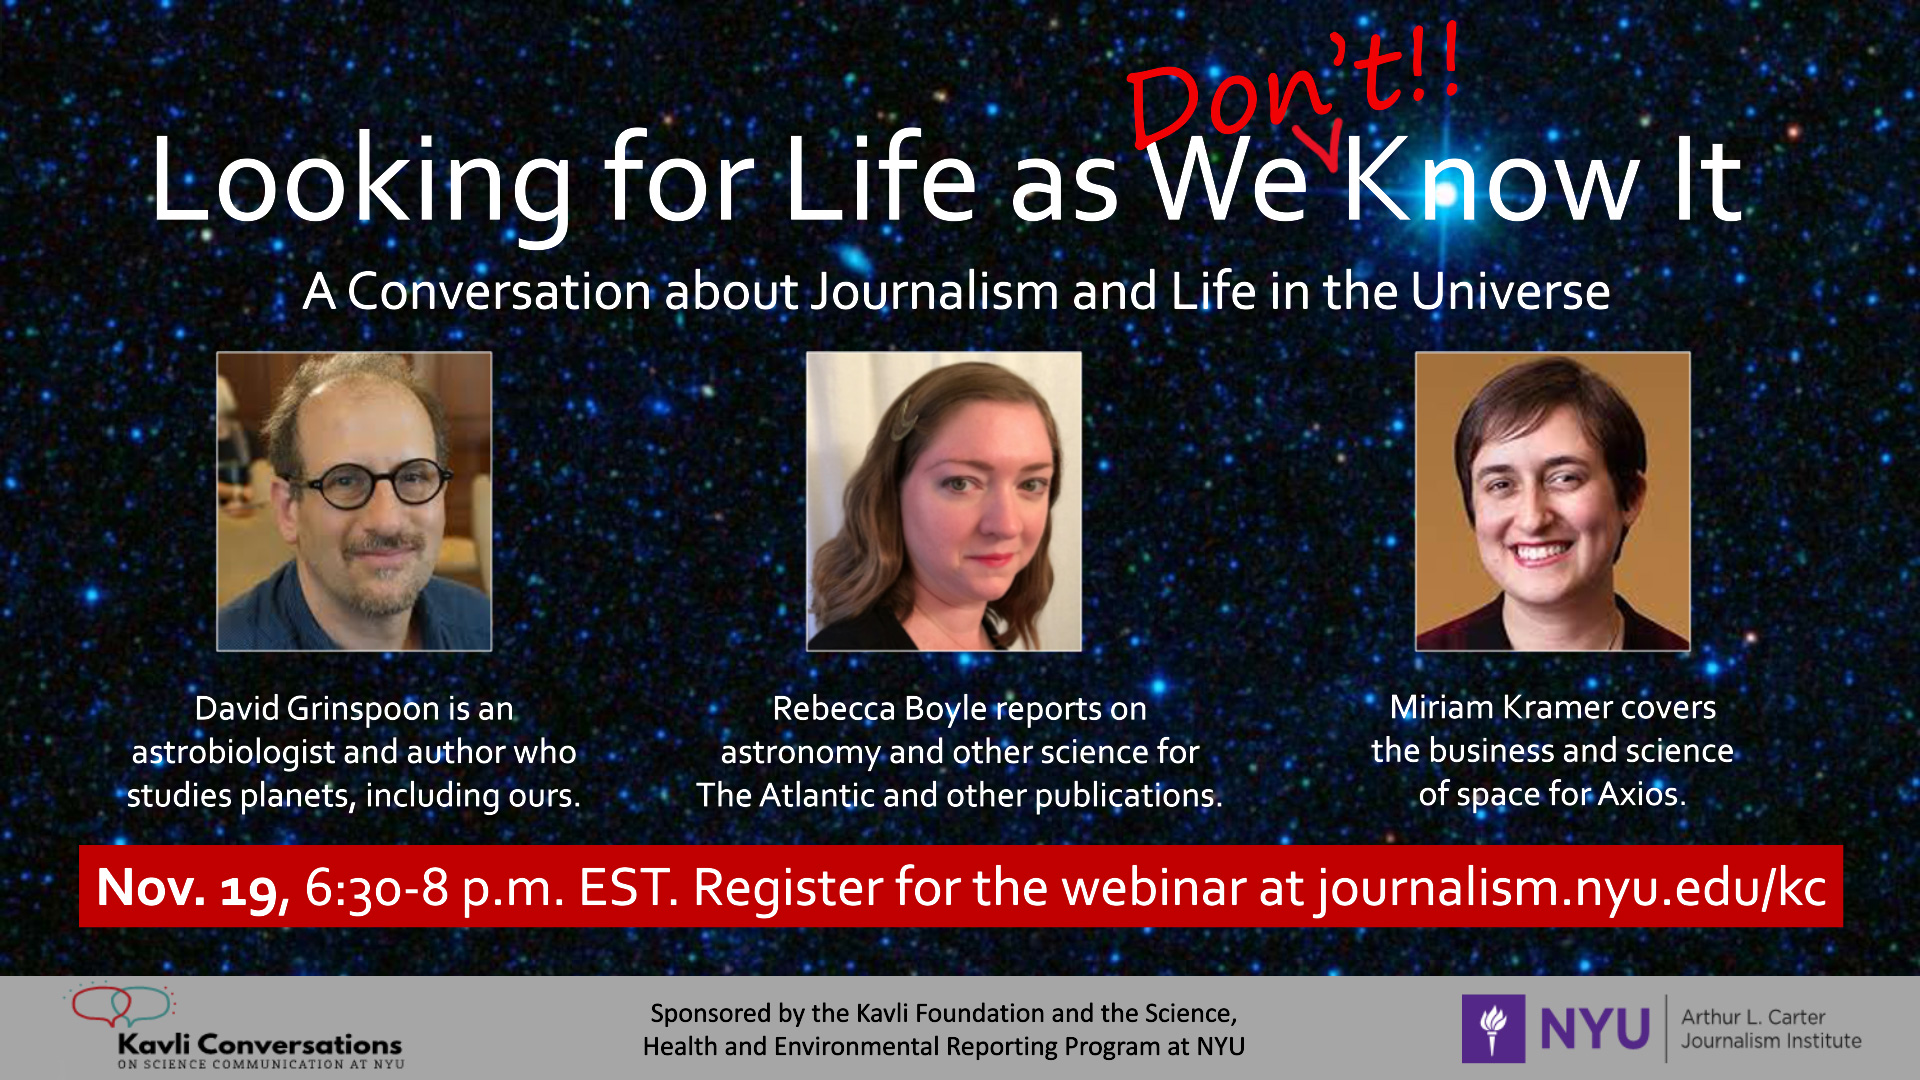 Event Poster - 2020 Fall - Looking for Life as We Don't Know It: A Conversation about Journalism and Life in the Universe - Nov 19, 2020 - See event page for details